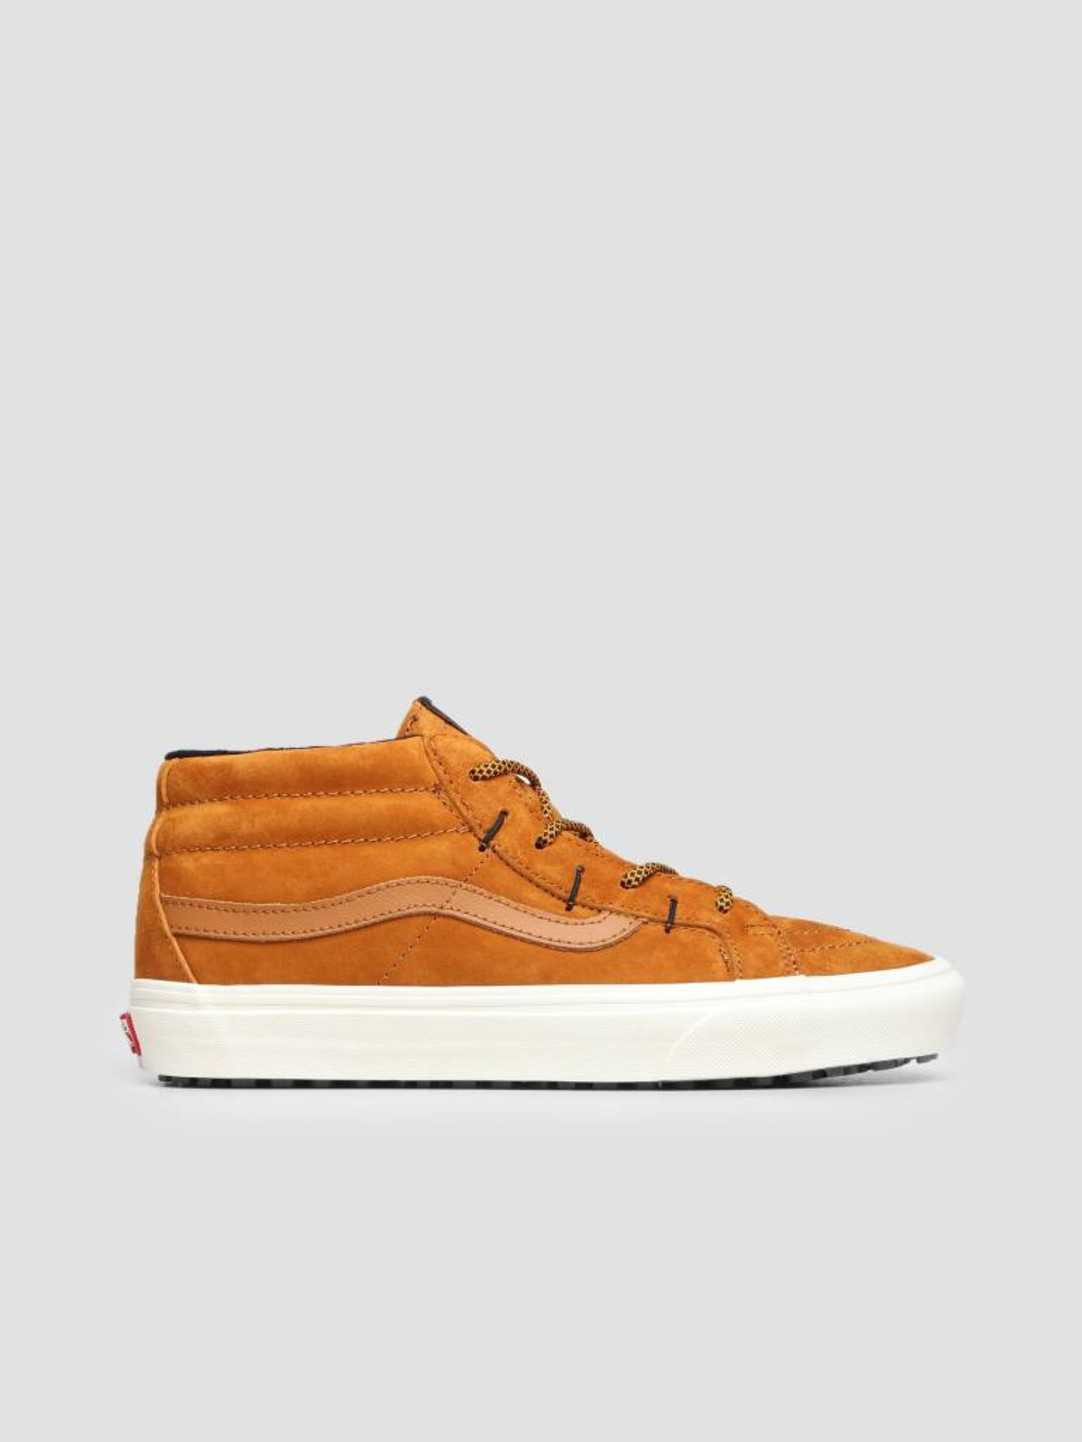 cacee932 Vans SK8-Mid Reissue Ghillie MTE Sudan Brown Marshmallow VN0A3TKQUCS1